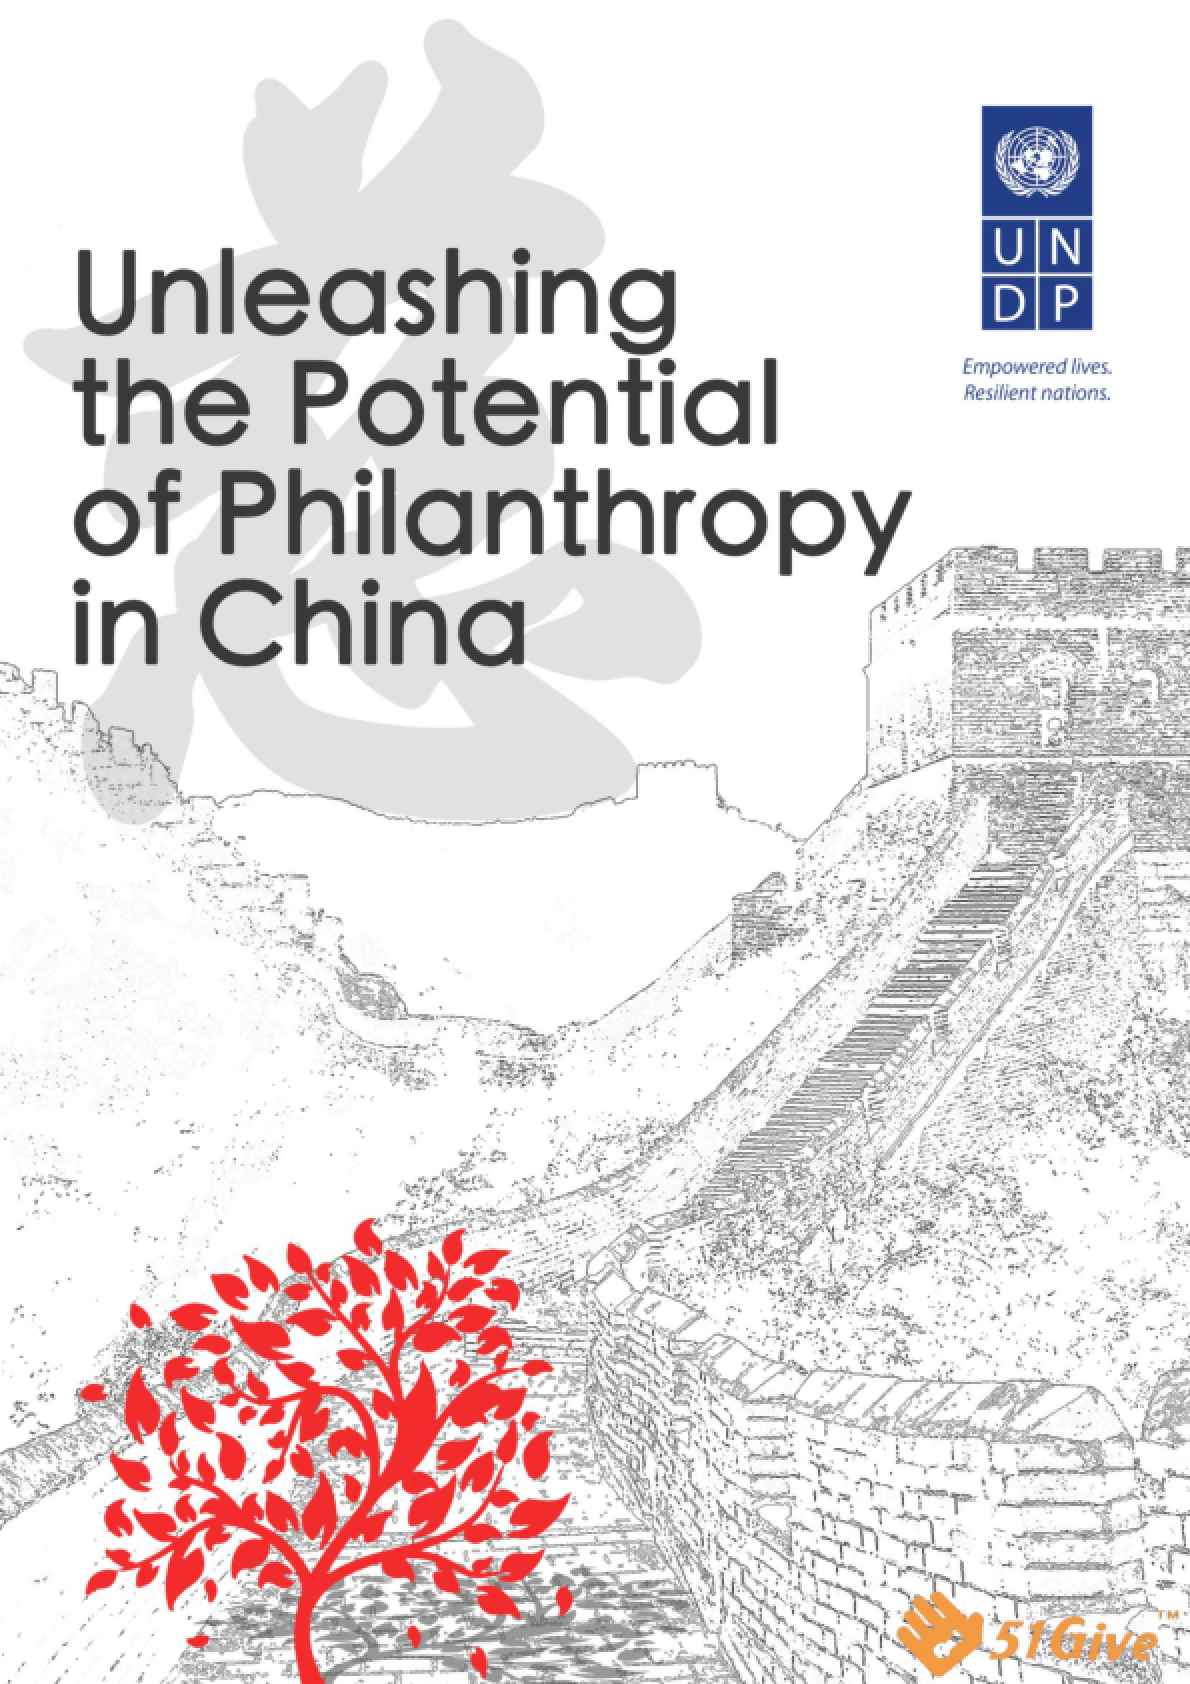 Unleashing the Potential of Philanthropy in China